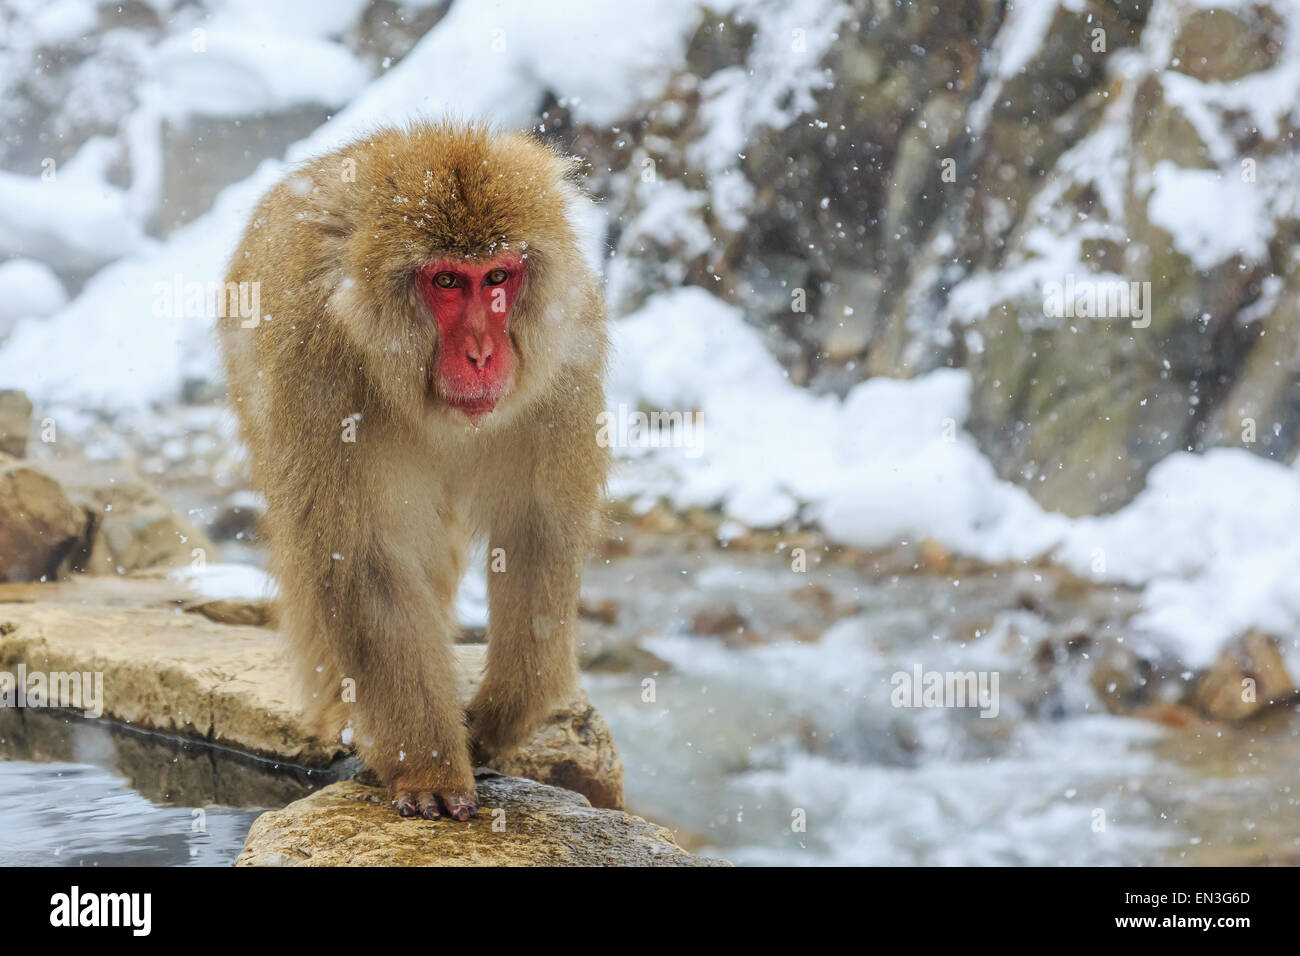 Snow monkey in a natural onsen (hot spring), located in Jigokudani Park, Yudanaka. Nagano Japan. - Stock Image